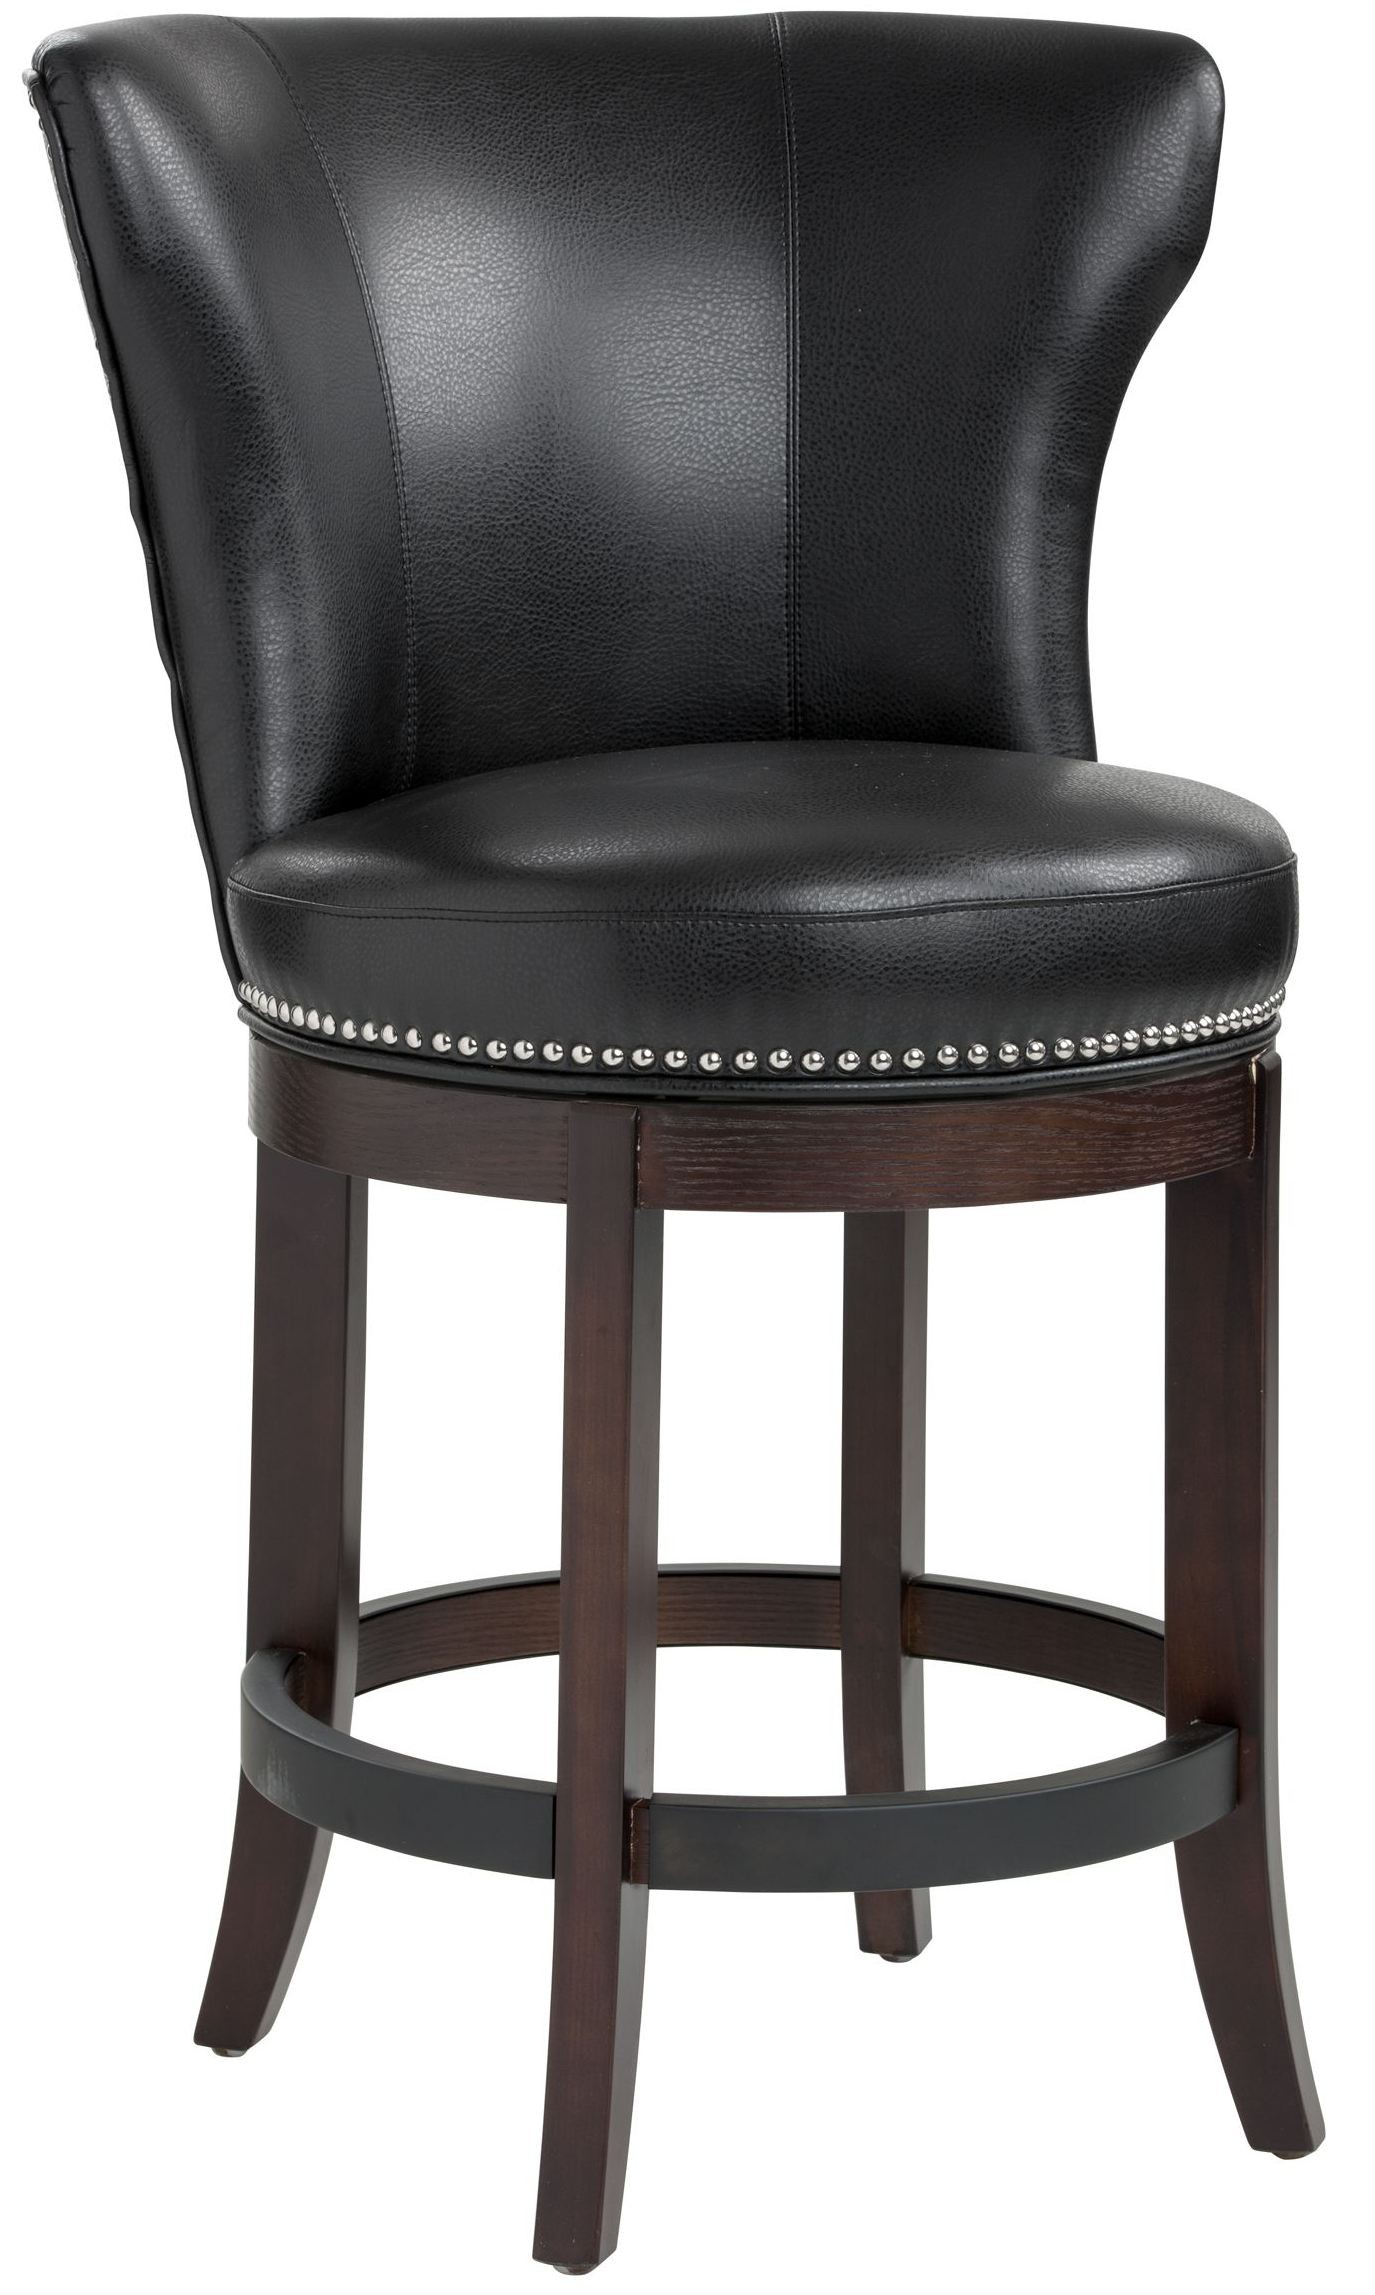 Tavern Black Leather Swivel Counter Stool From Sunpan